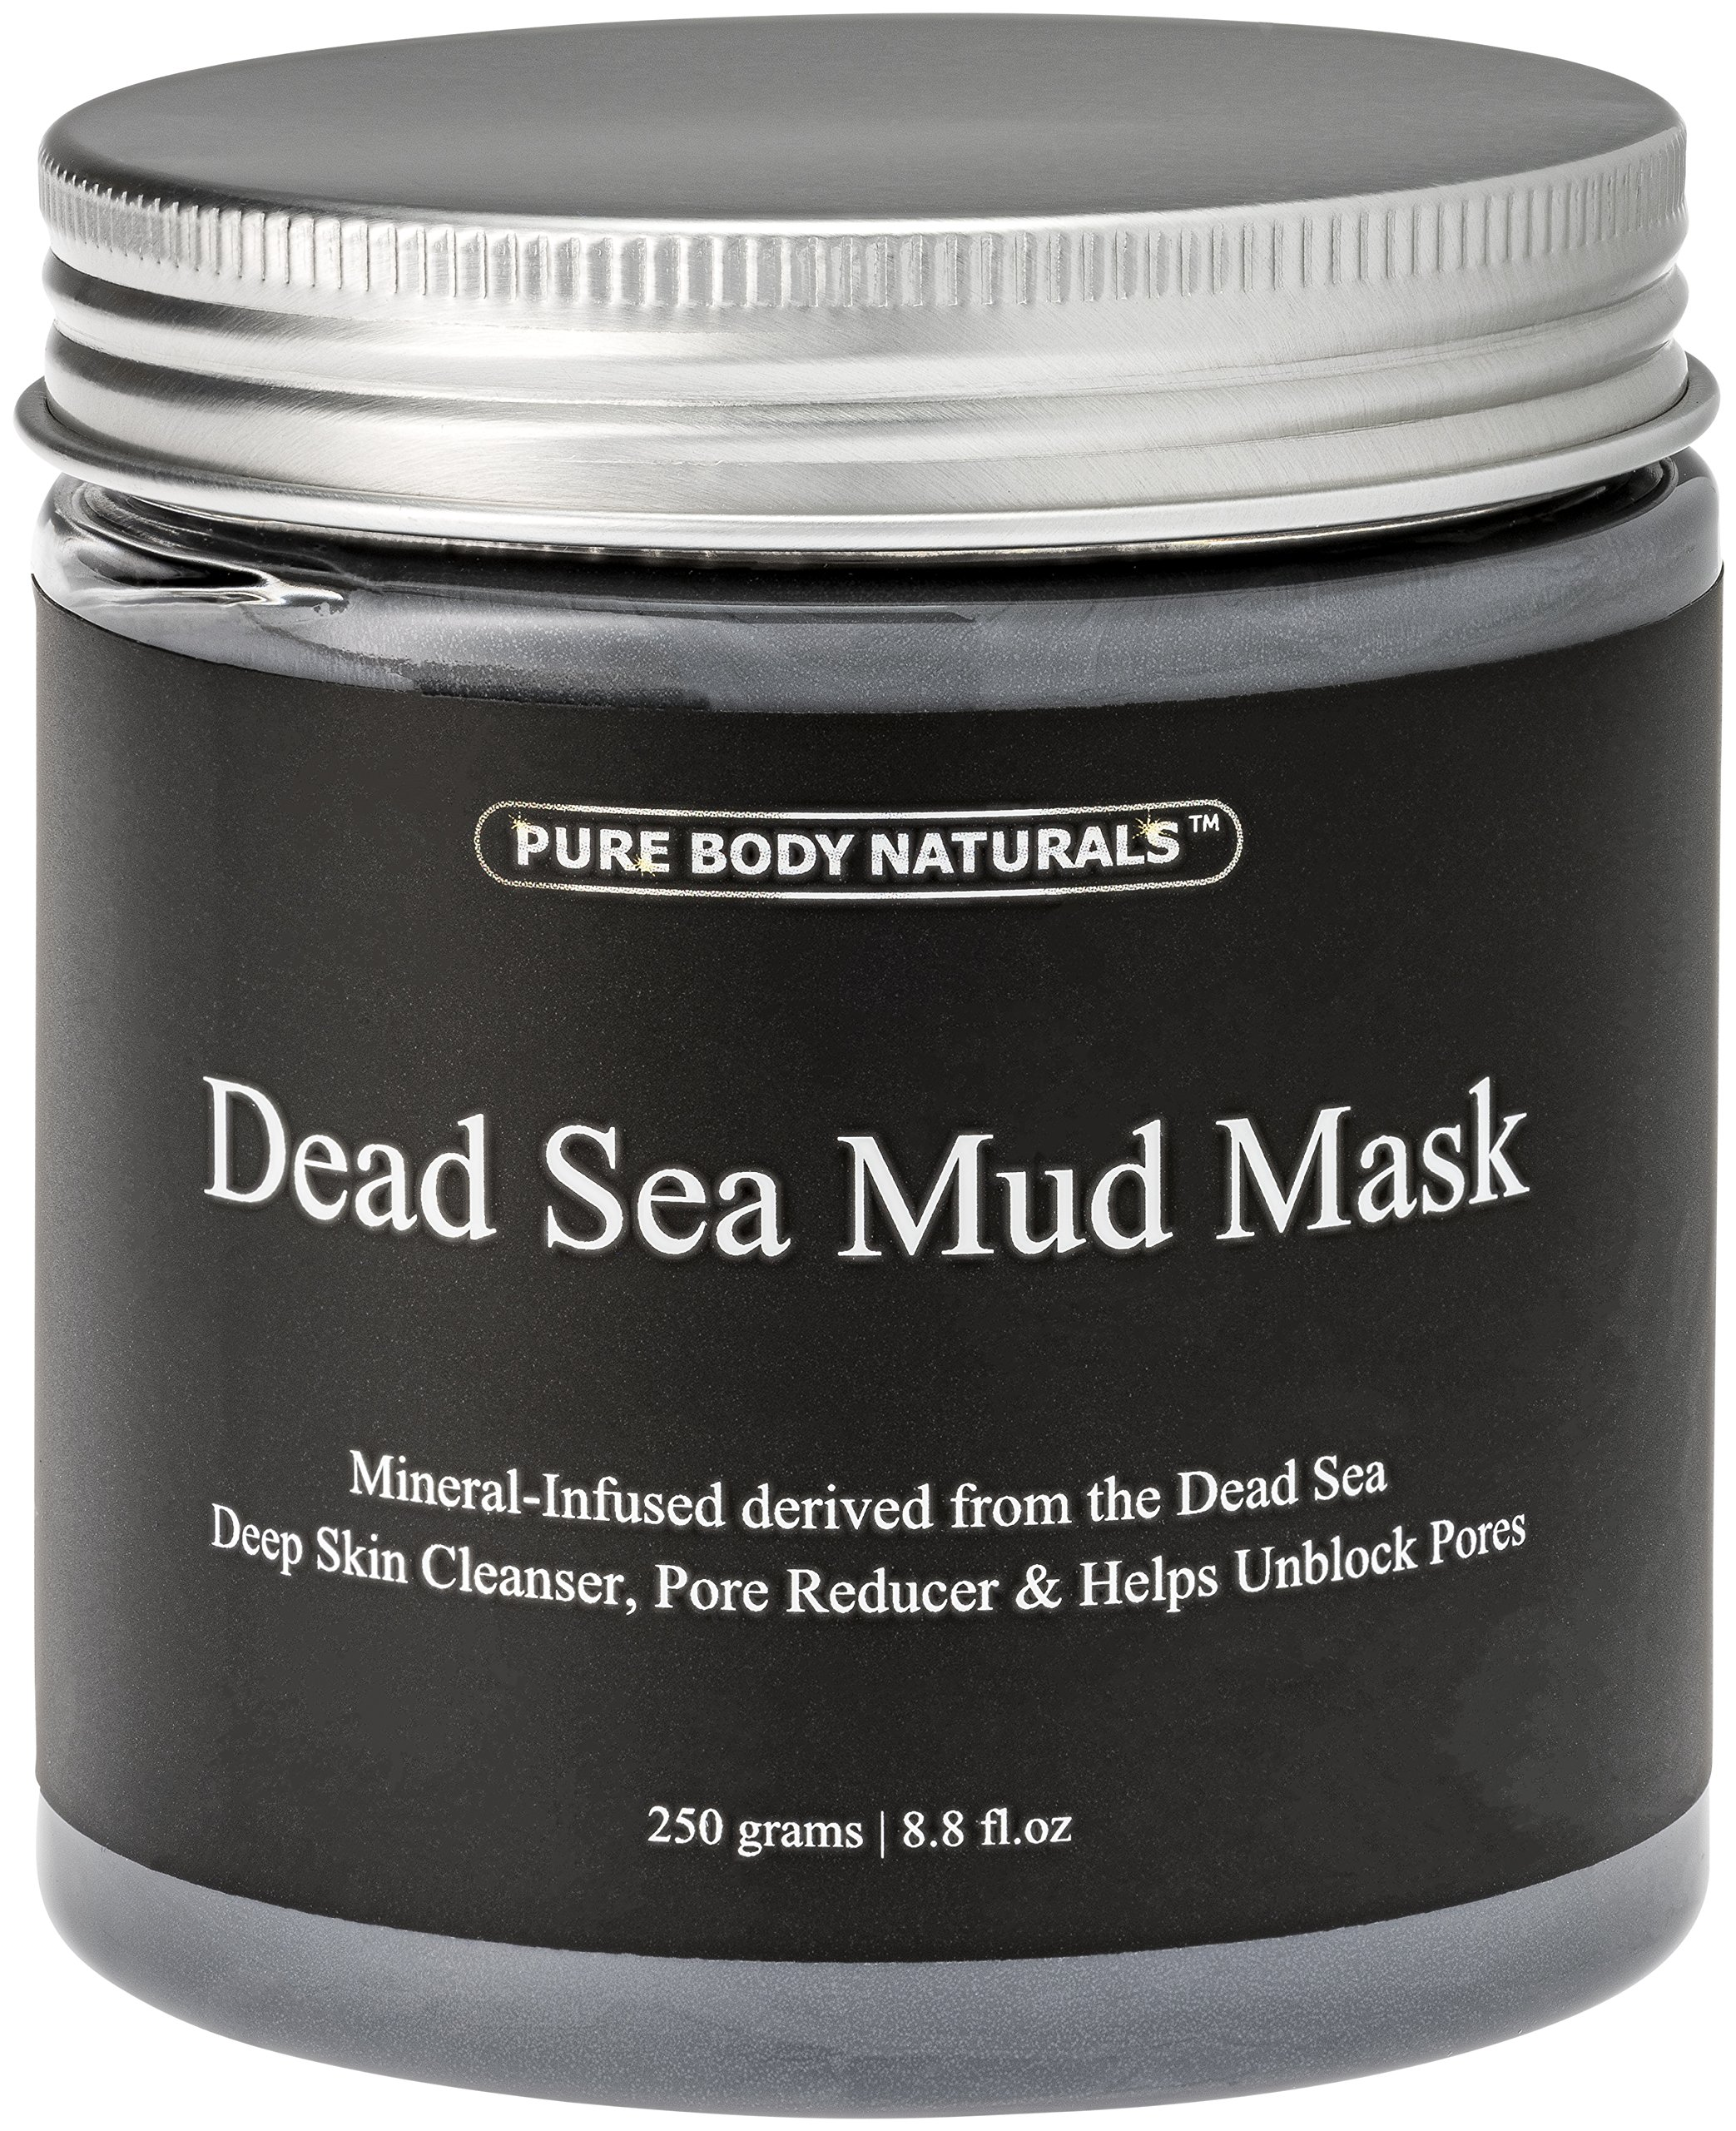 Pure Body Naturals Dead Sea Mud Mask for Face and Body, Purifying Face Mask for Acne, Blackheads, and Oily Skin, 8.8 Ounce by Pure Body Naturals